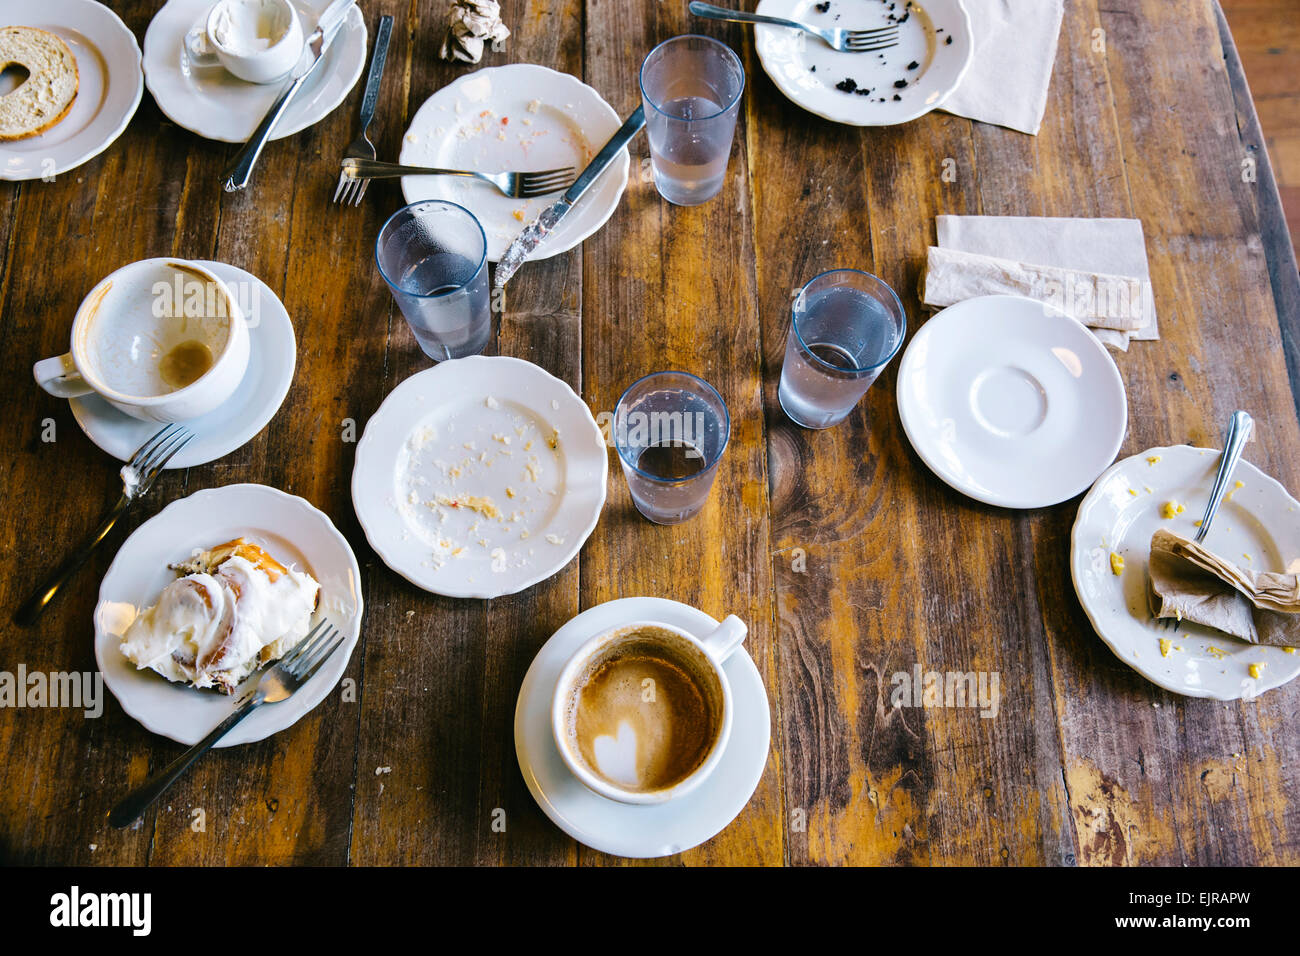 Empty plates, coffee cups and glasses on cafe table Stock Photo